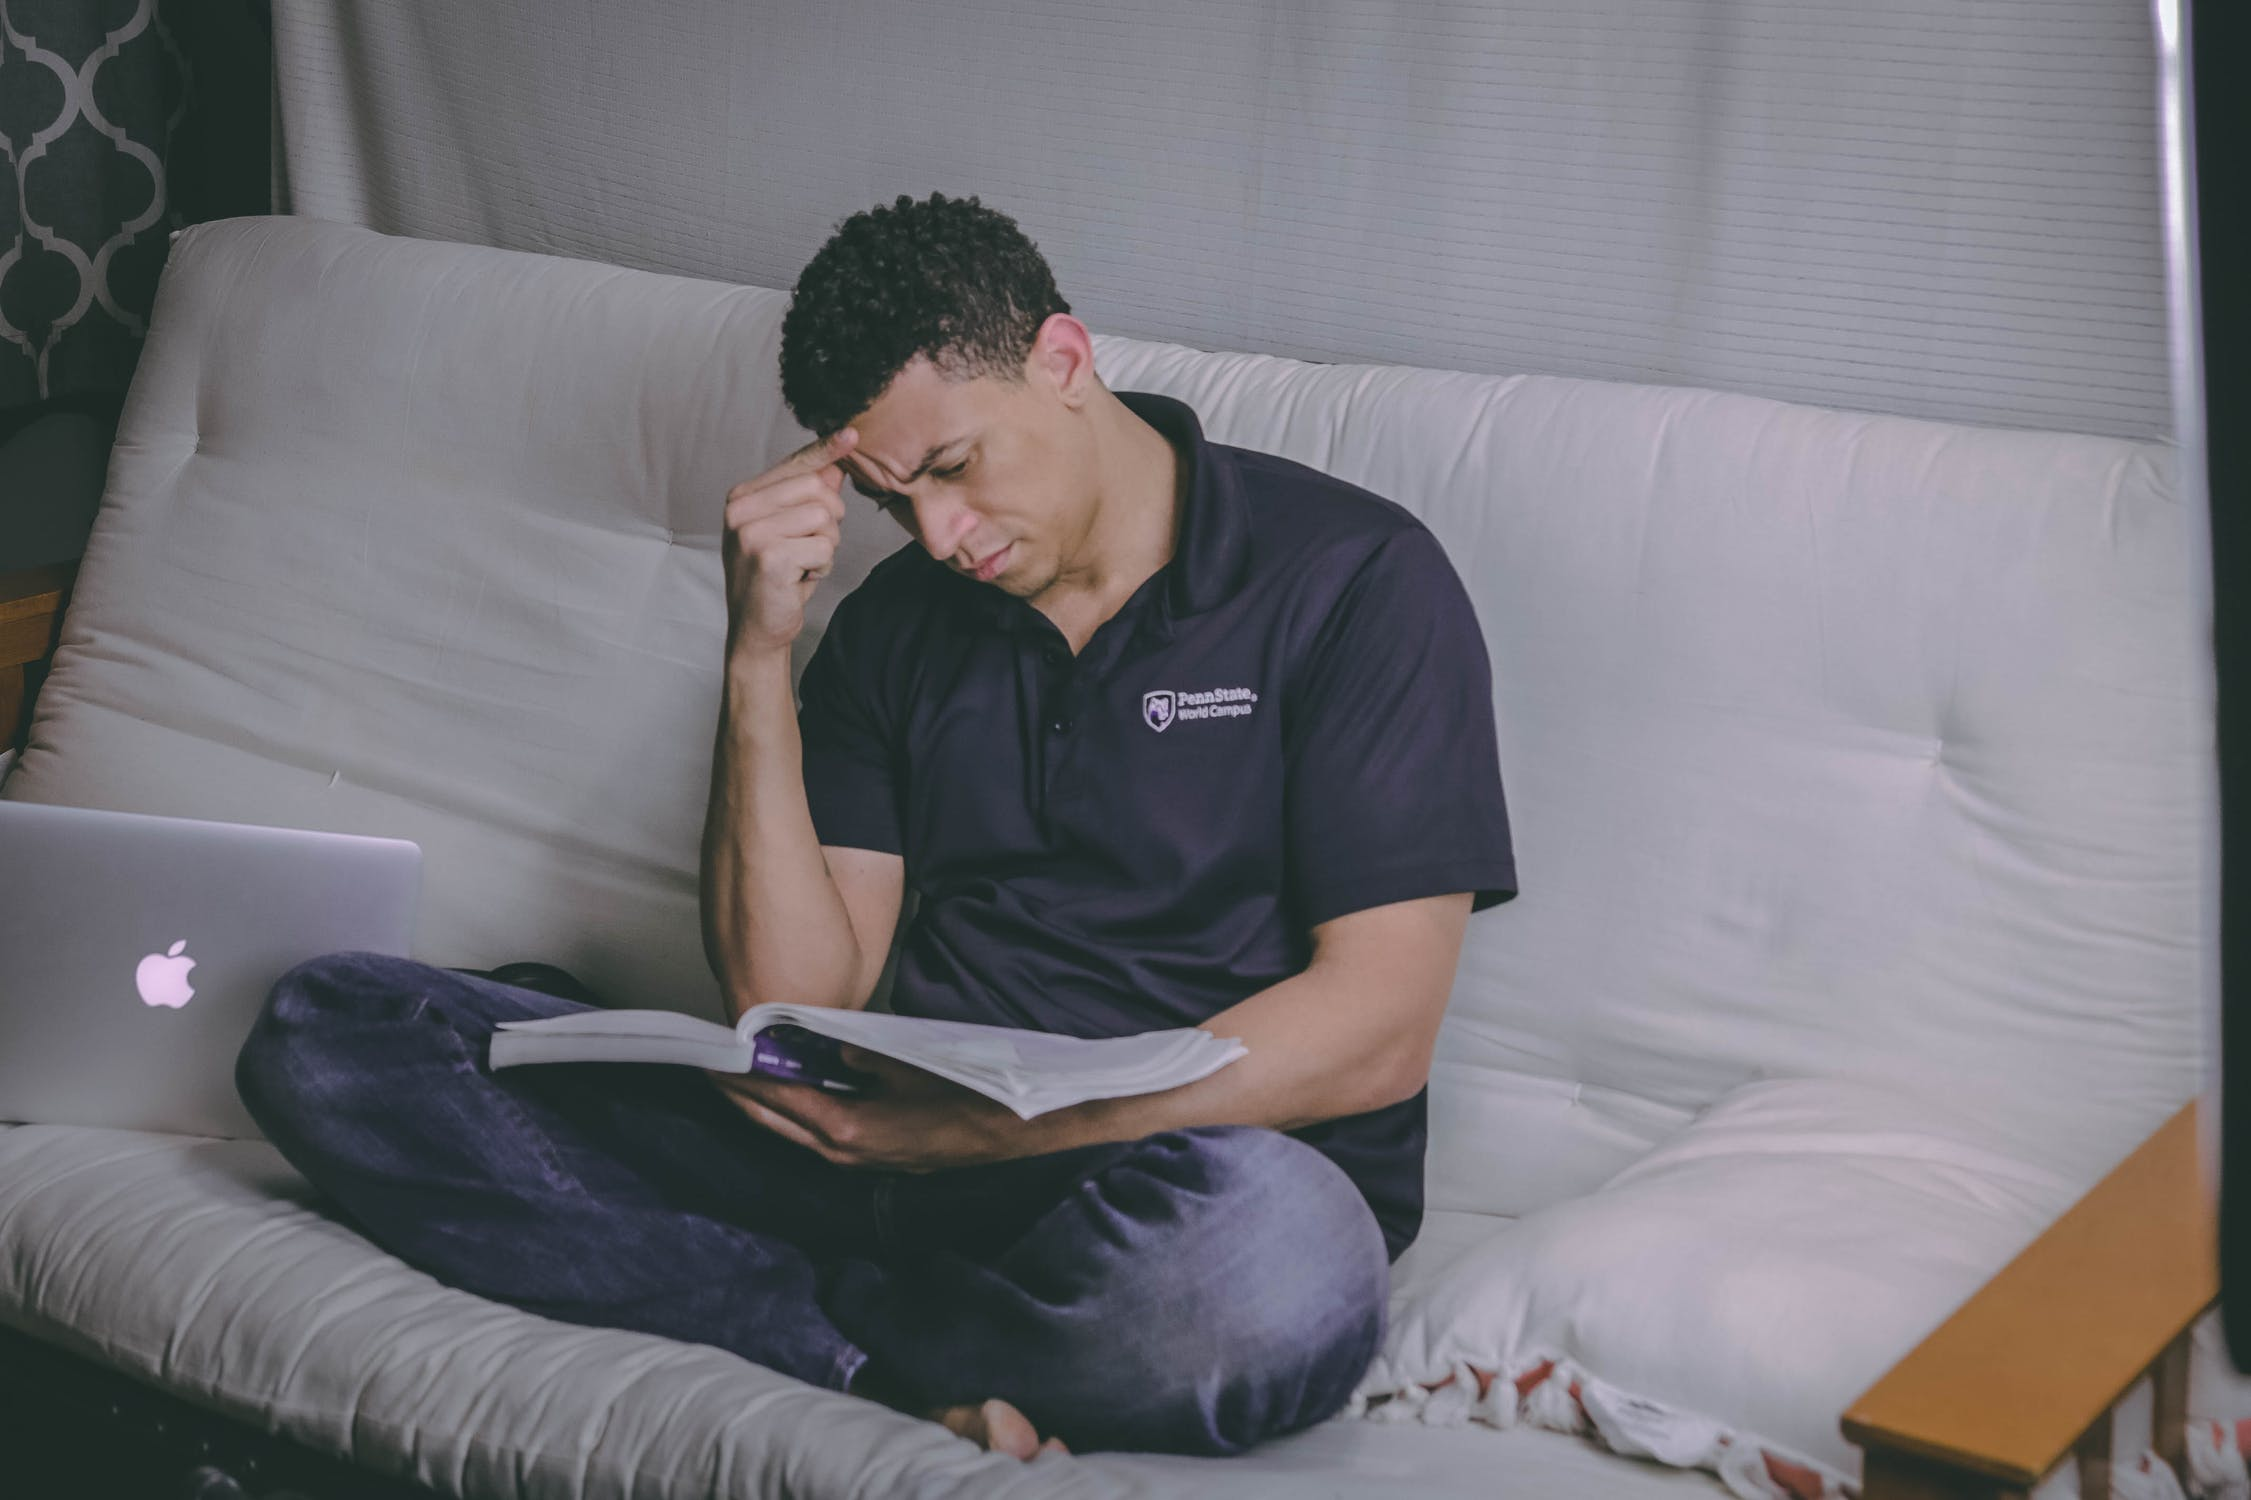 Man studying intensively for the Bar exam